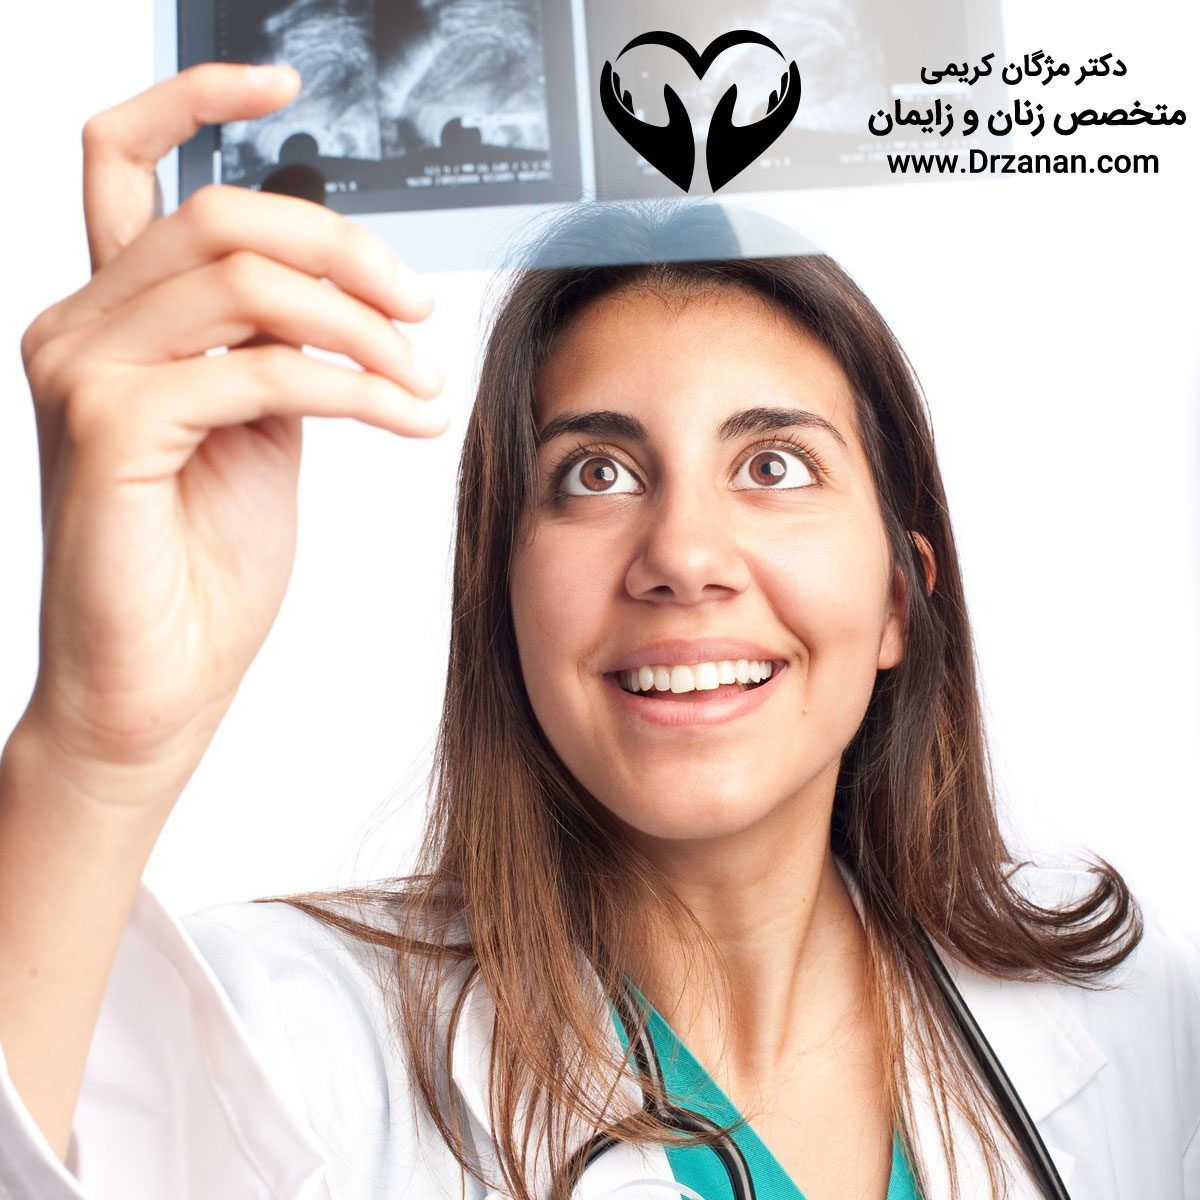 about-mammography-one-of-the-most-effective-and-effective-ways-to-diagnose-breast-cancer-1200x1200.jpg